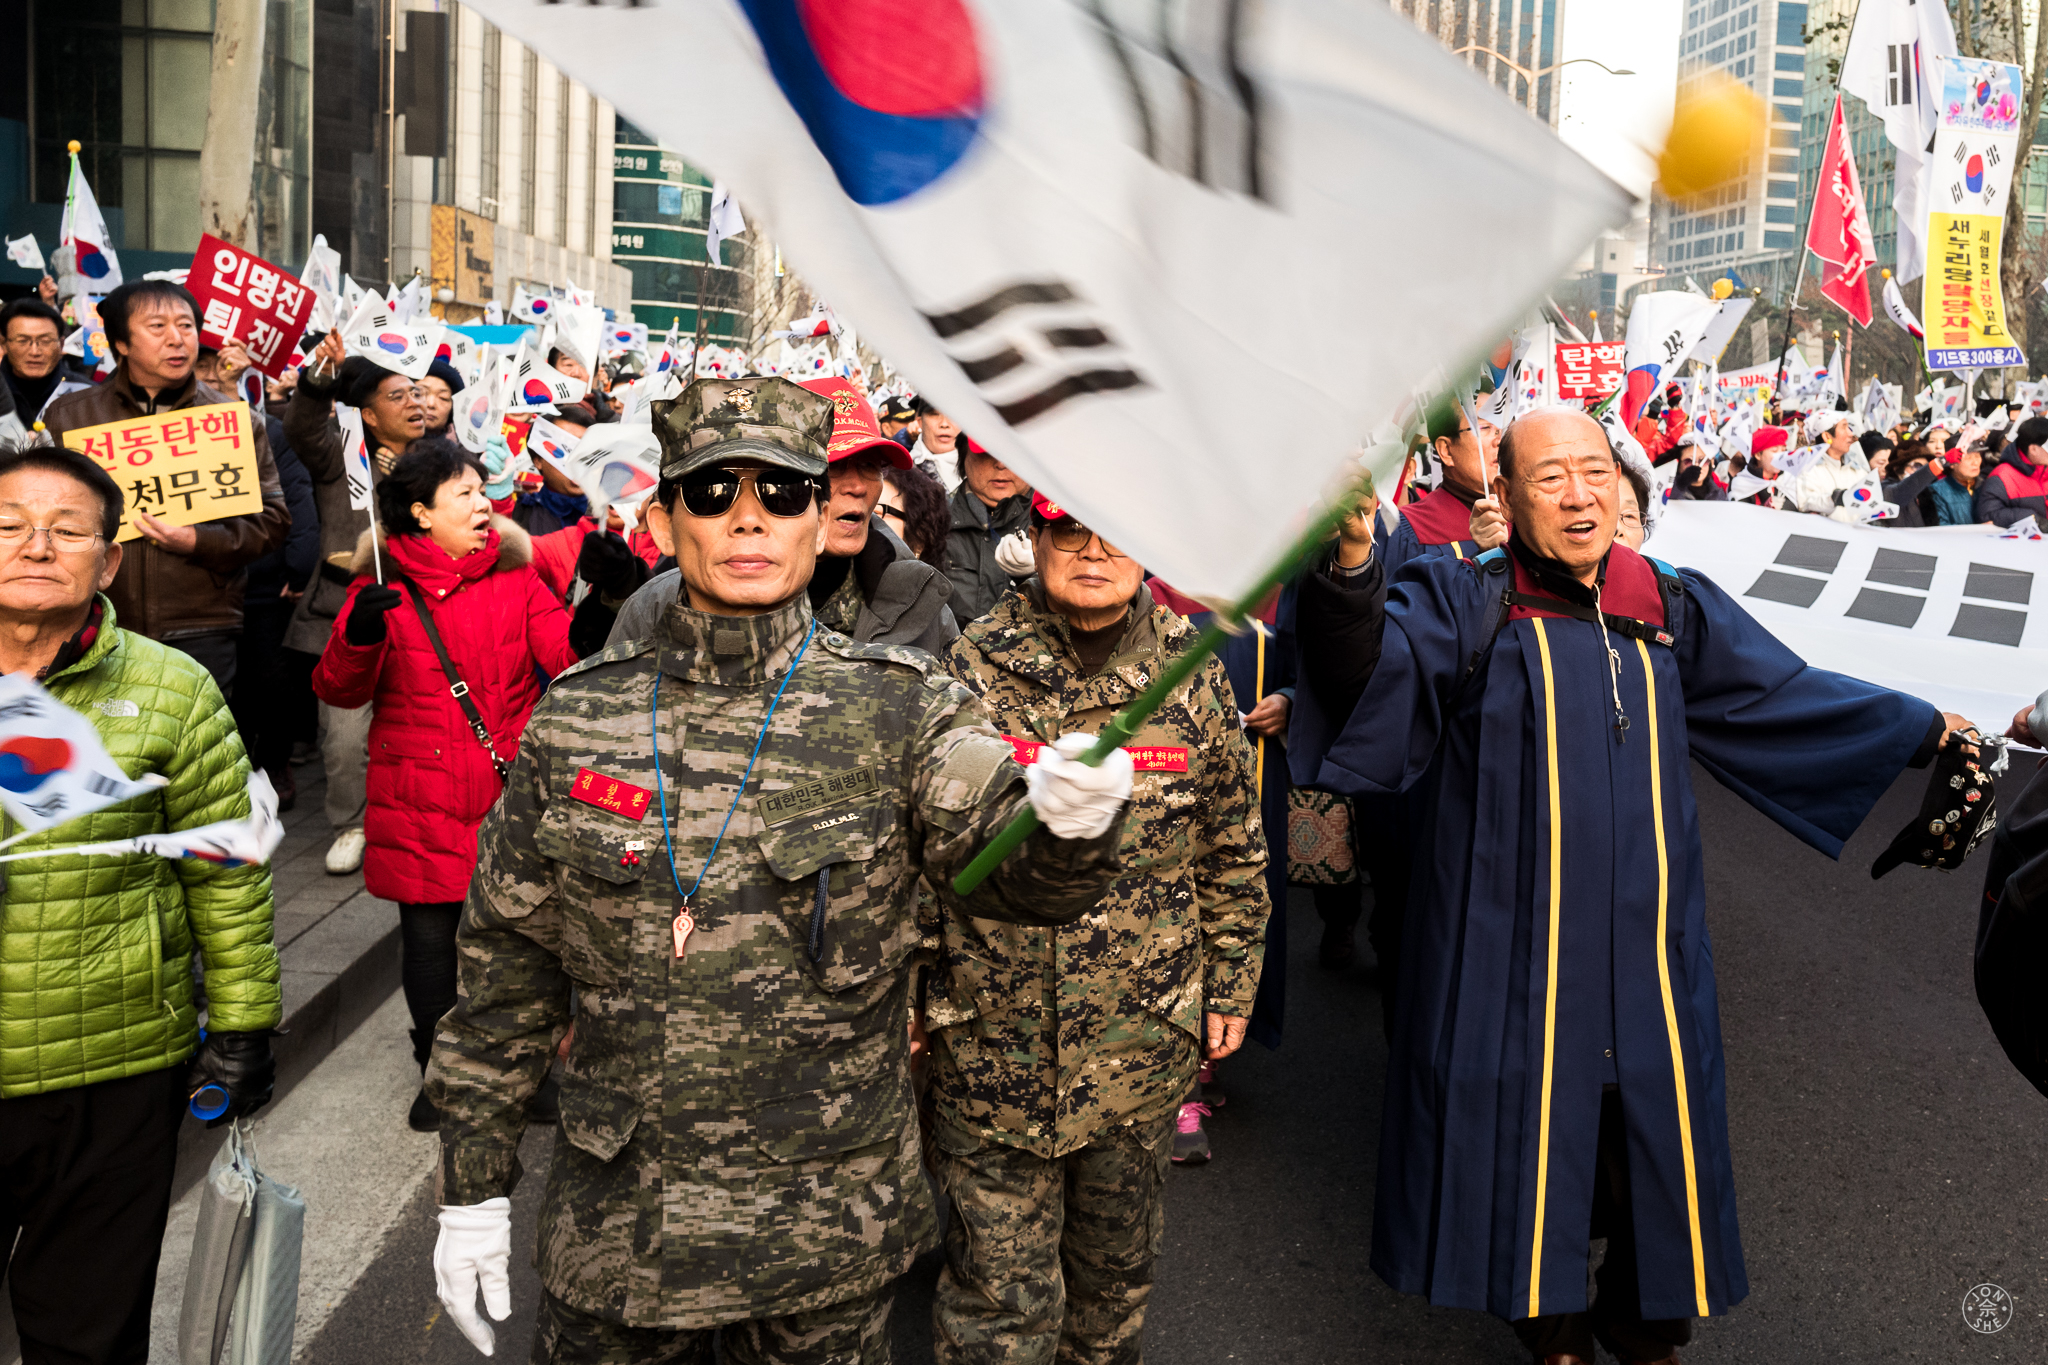 """""""We're All In This Together"""". Soldiers, priests, and academicians marched shoulder-to-shoulder, in a peaceful demonstration attended by tens of thousands of the republic's citizens in Gangnam, the fashionable district of Seoul. There were demonstrators both for and against President Park Geun-hye to be ousted from office for her alleged role in a corruption scandal. Seoul, South Korea. January 2017. © Jon She. Leica Q (Typ 116), Leica Summilux 28mm f/1.7 ASPH (FLE)."""